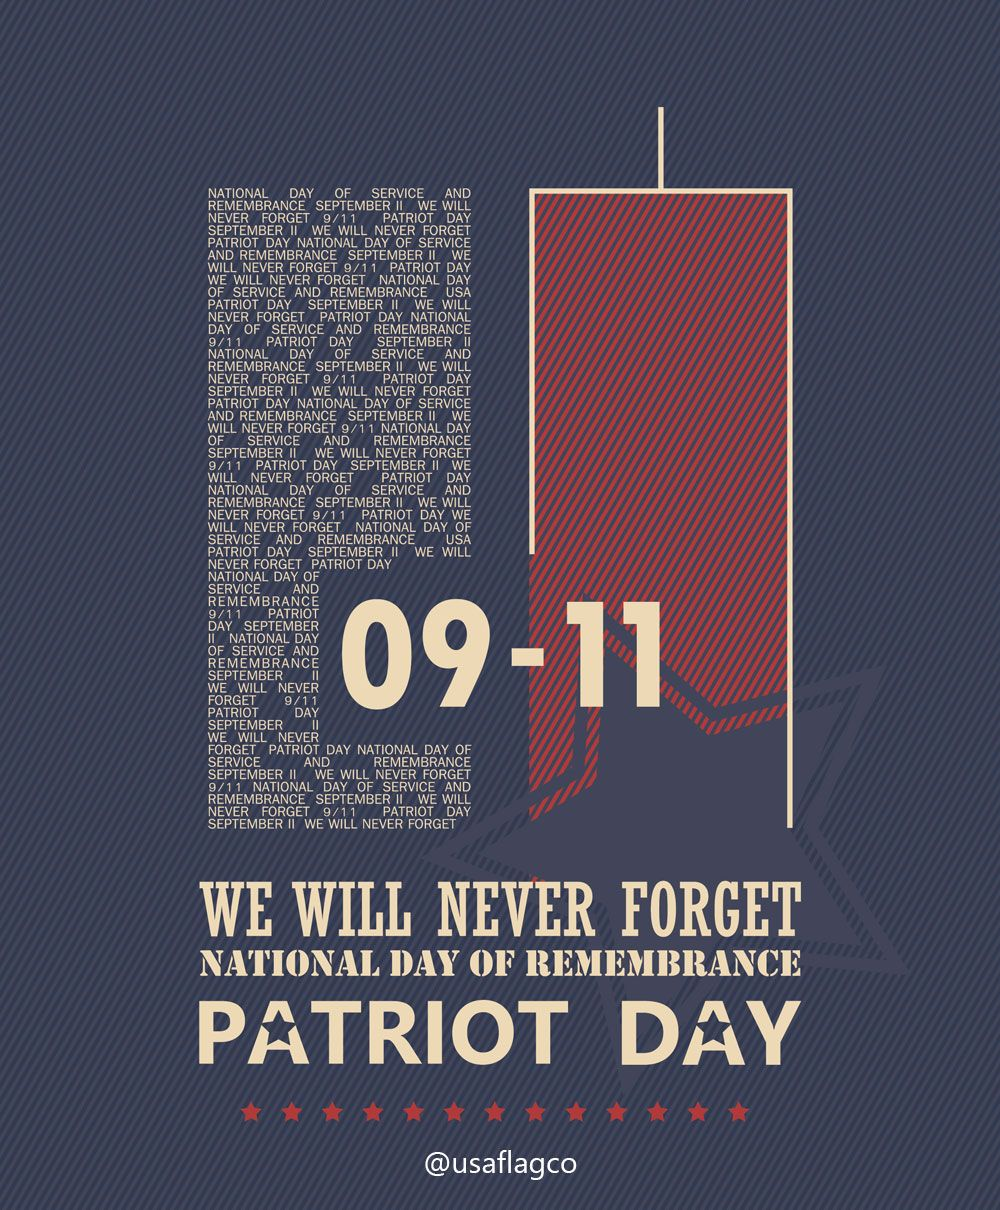 Patriot Day National Day Of Service And Remembrance September 11 Memorial Patriots Day Remembering September 11th